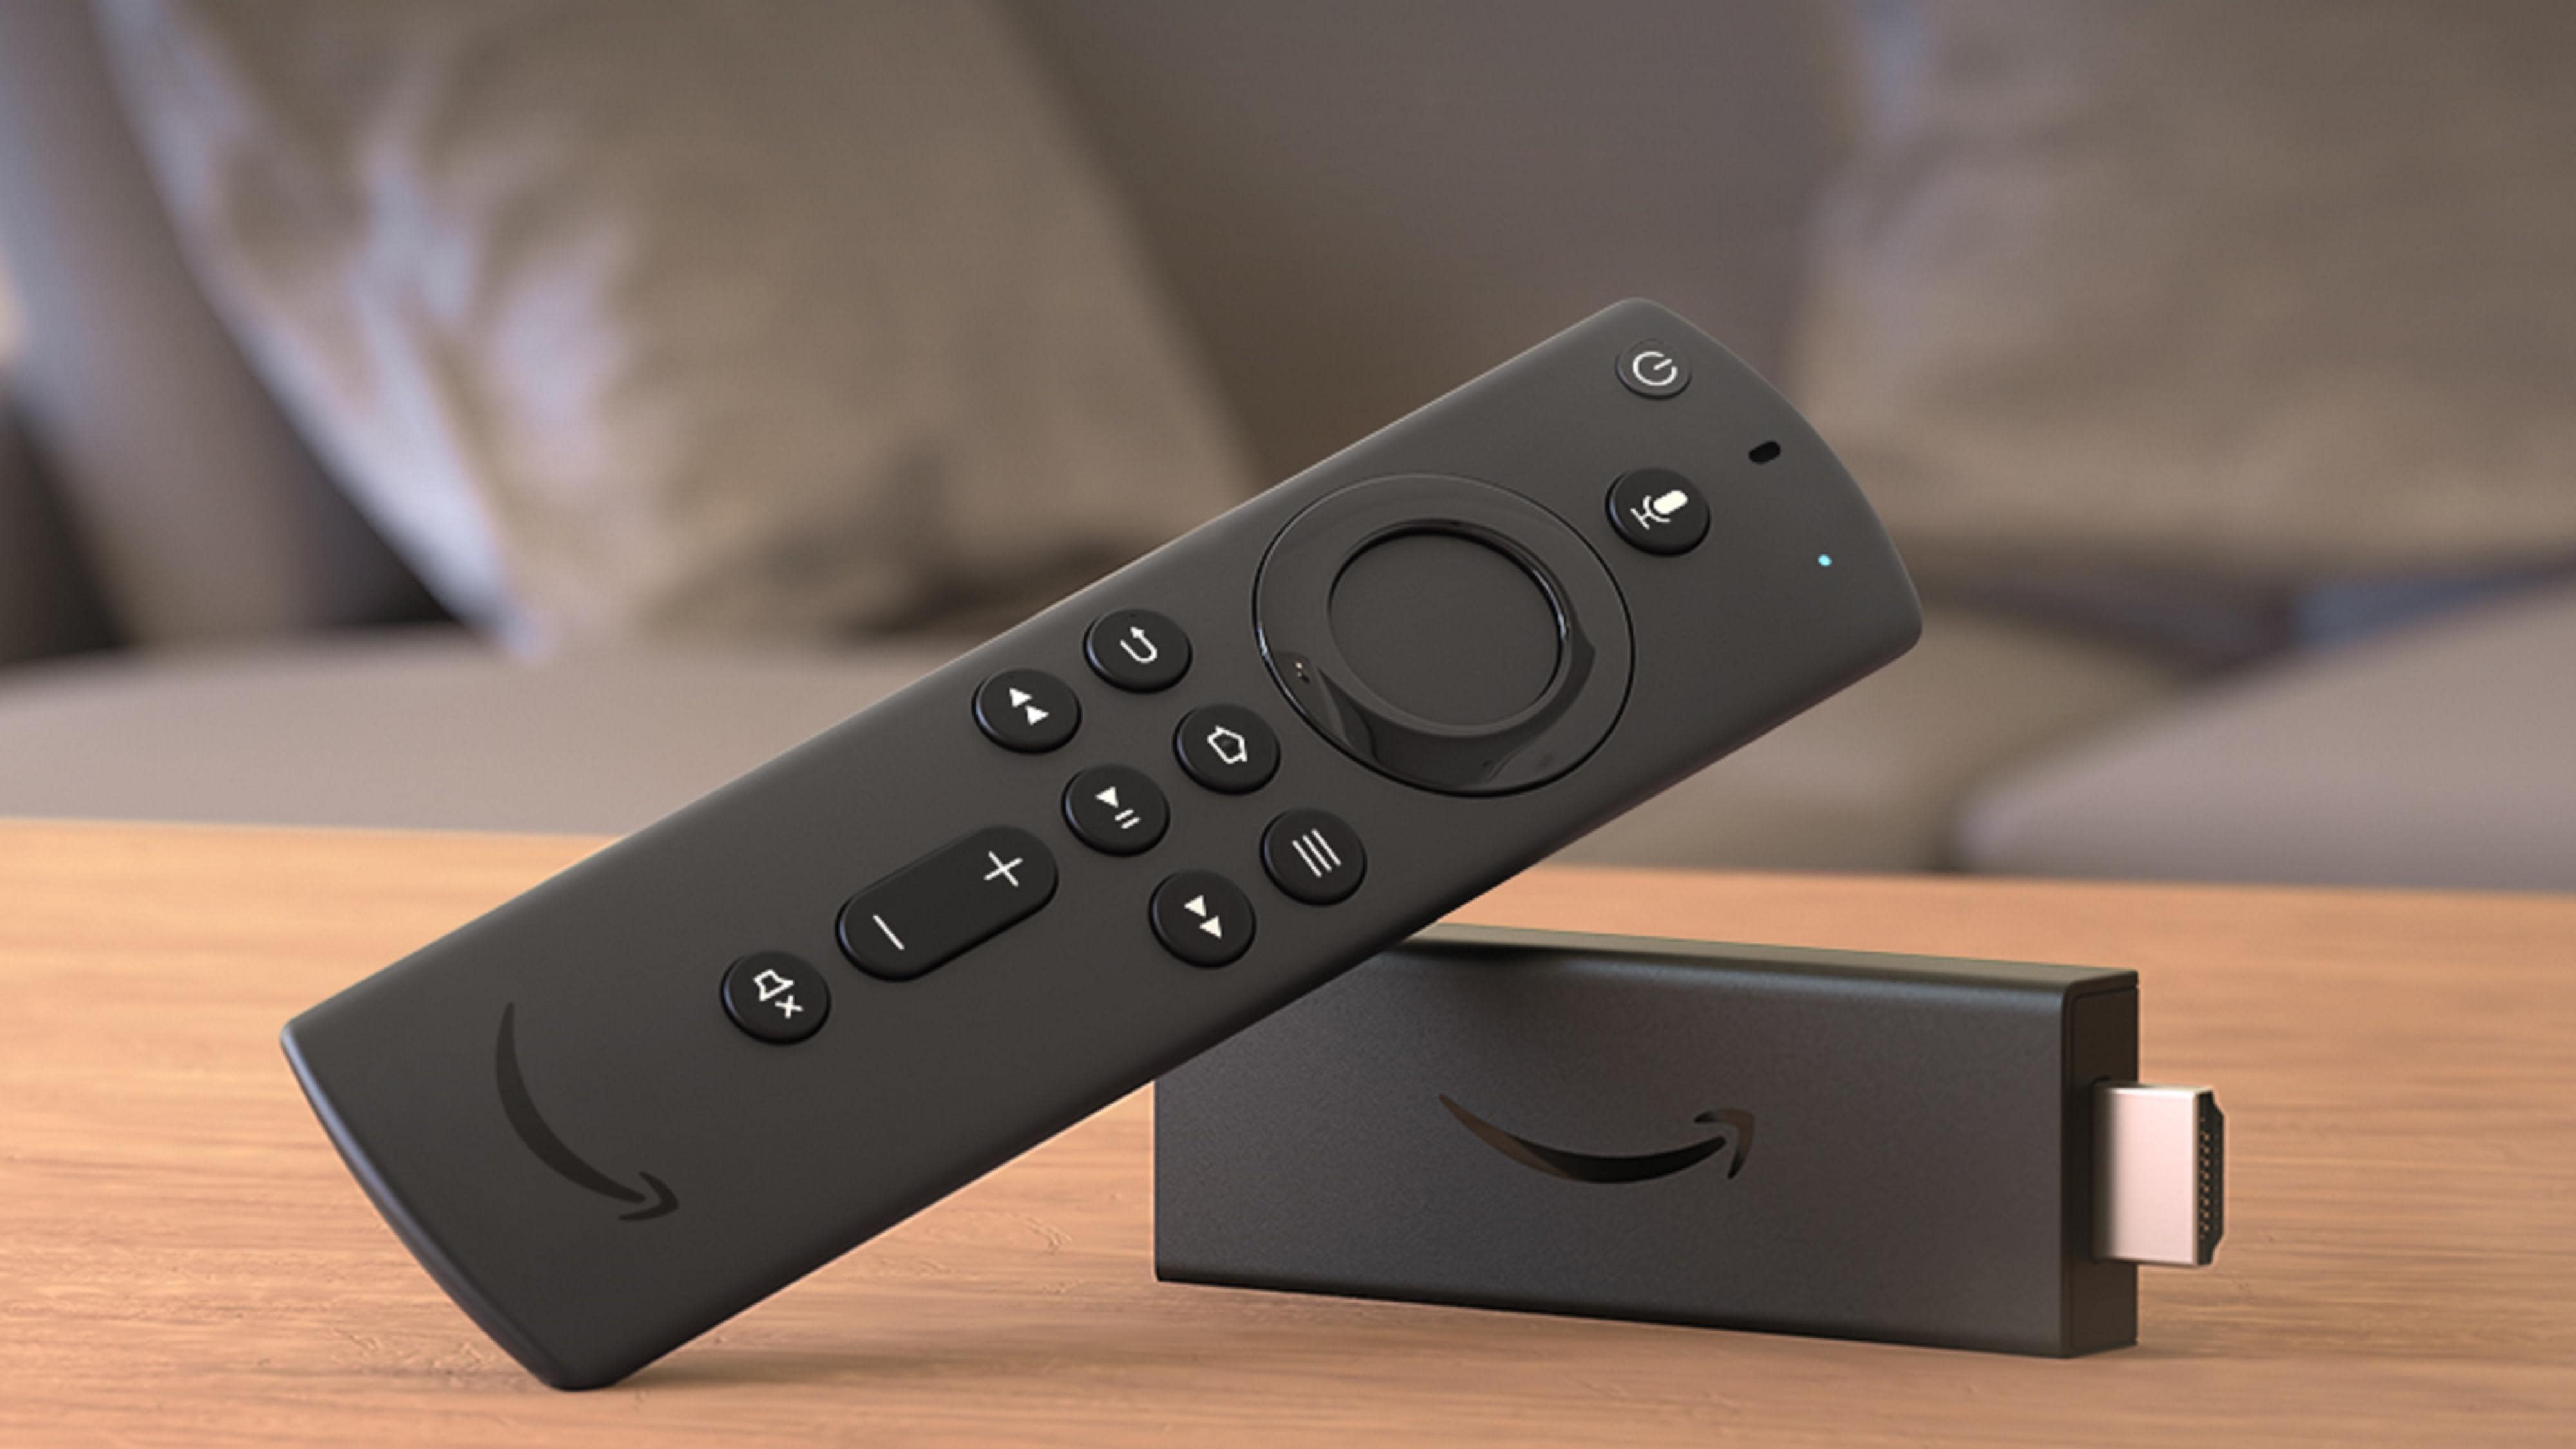 Best Amazon Fire Tv Stick Tips And Tricks Get The Most Out Of Fire Tv Stick Using These Tips Business Insider India